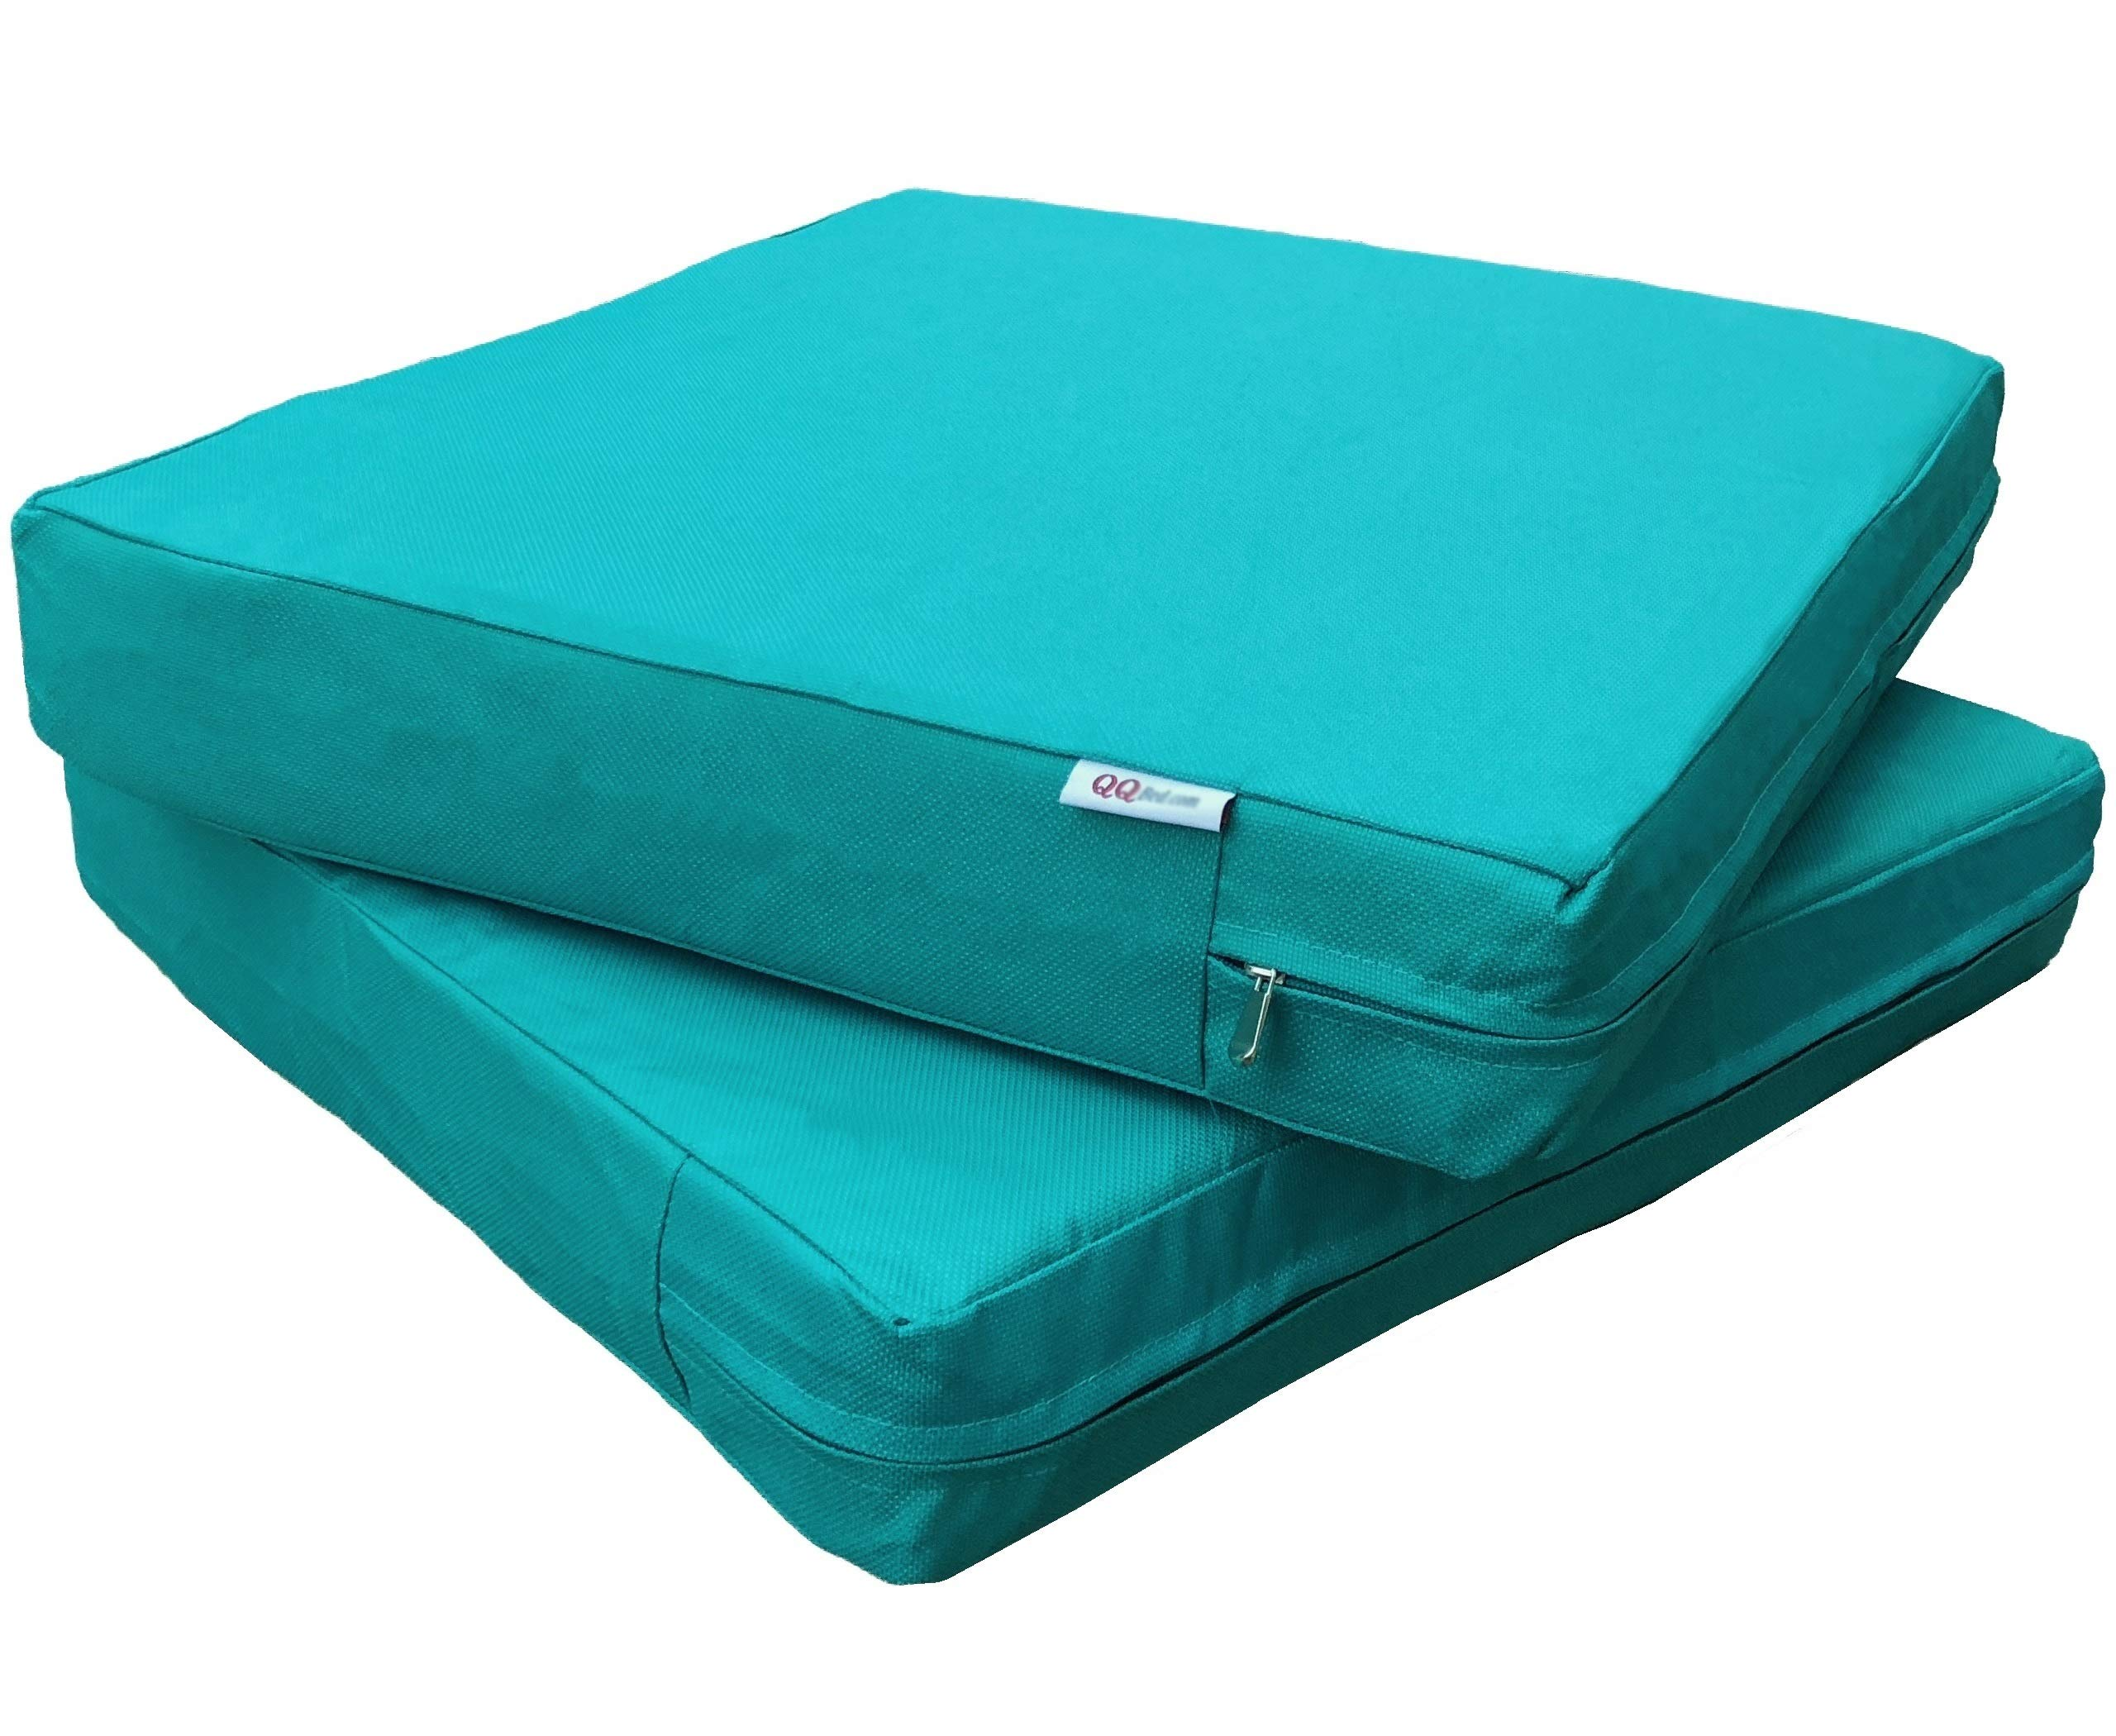 QQbed 2 Pack Outdoor Patio Deep Seat Memory Foam (Seat and Back) Cushion Set with Waterproof Internal Cover - Size 24''X22''X4'', Peacock Blue